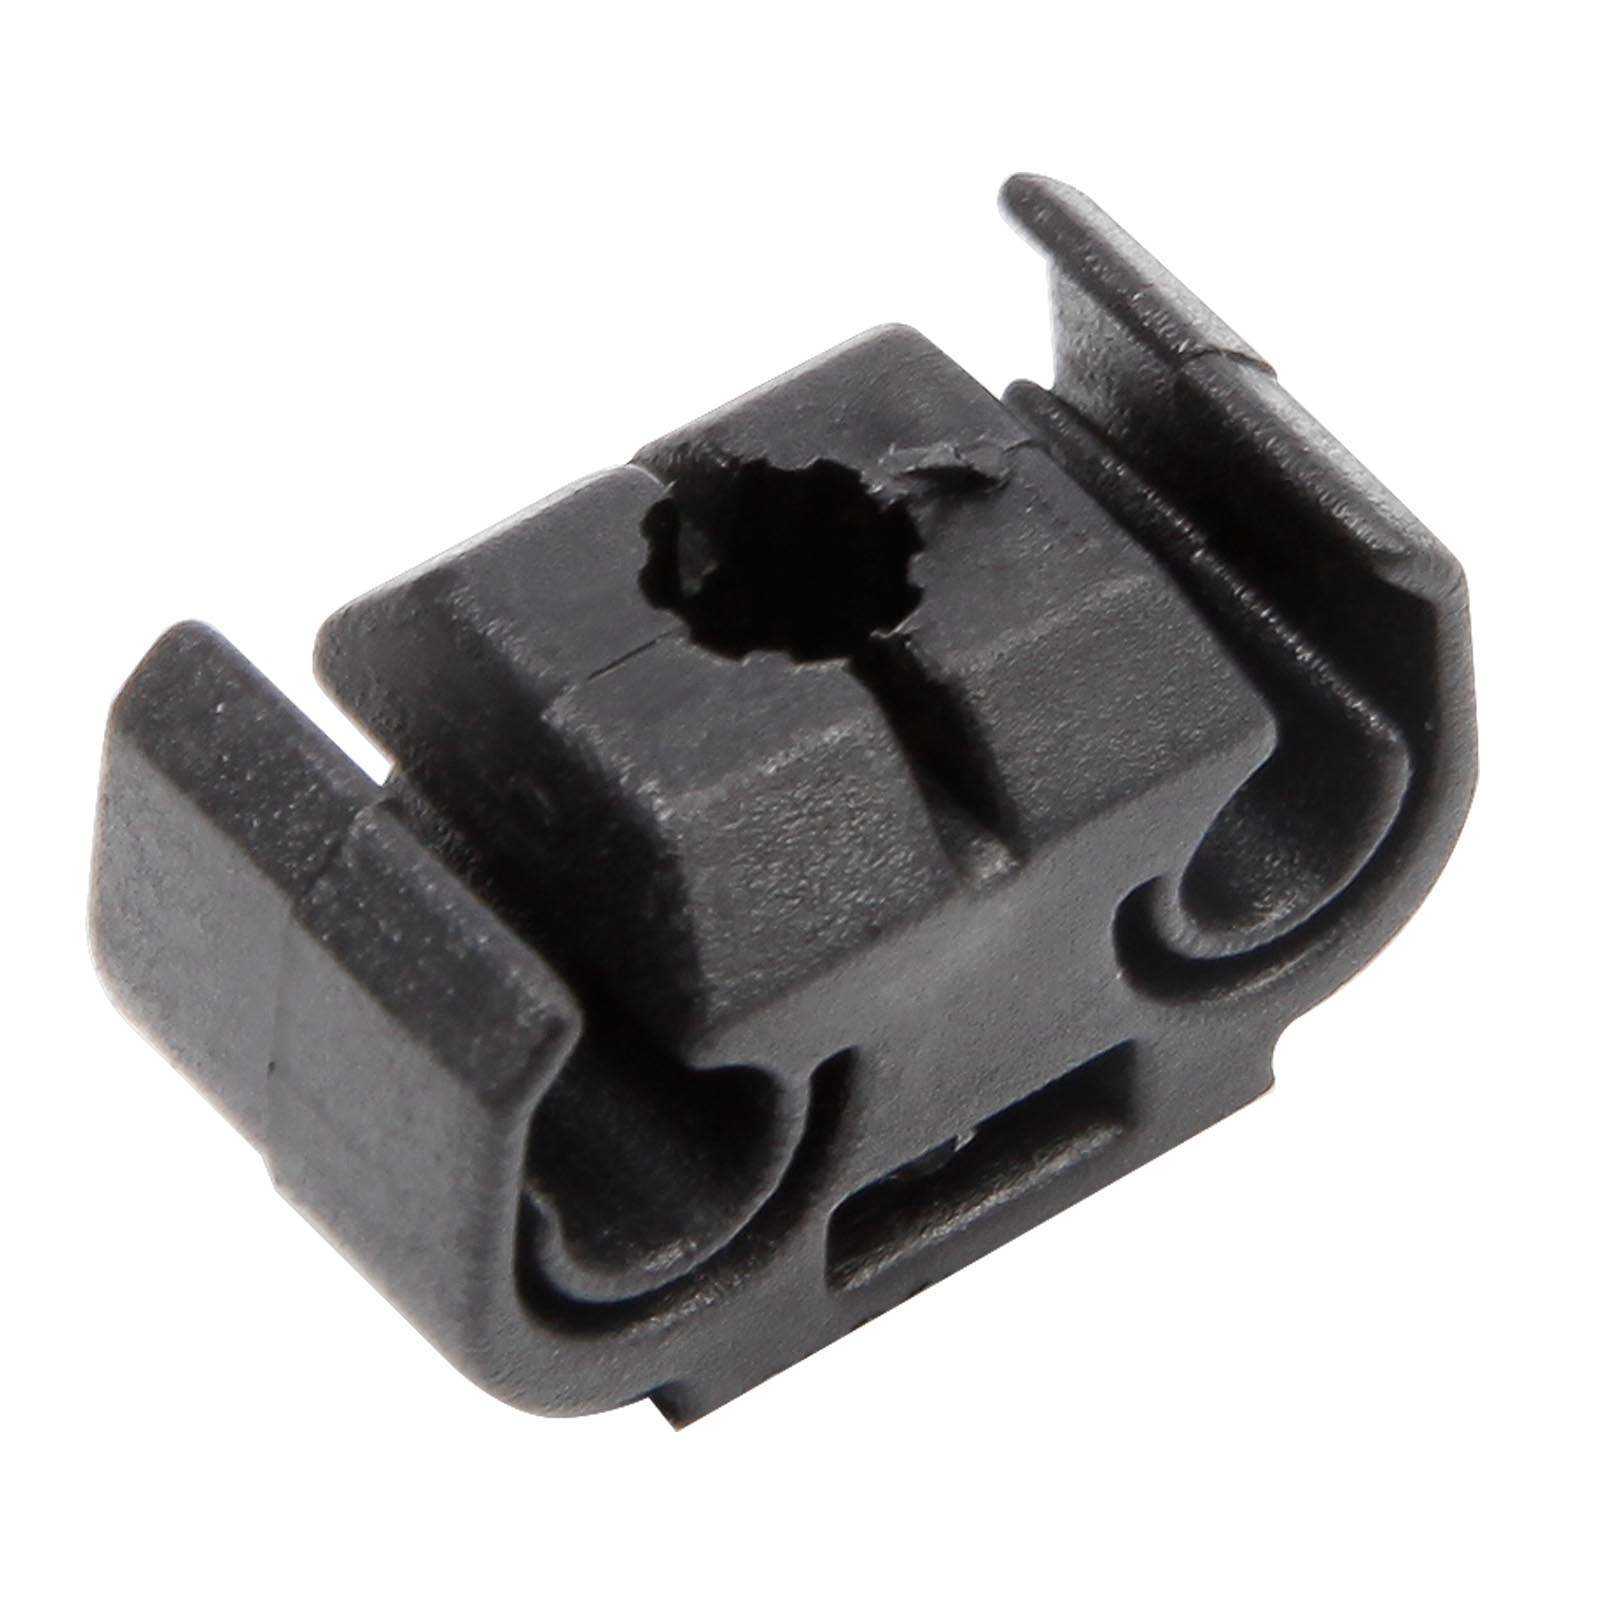 40 BRAKE PIPE LINE CABLE HOLDER CLIP MAXIMUM DIAMETER 5MM FITS 9MM HOLE